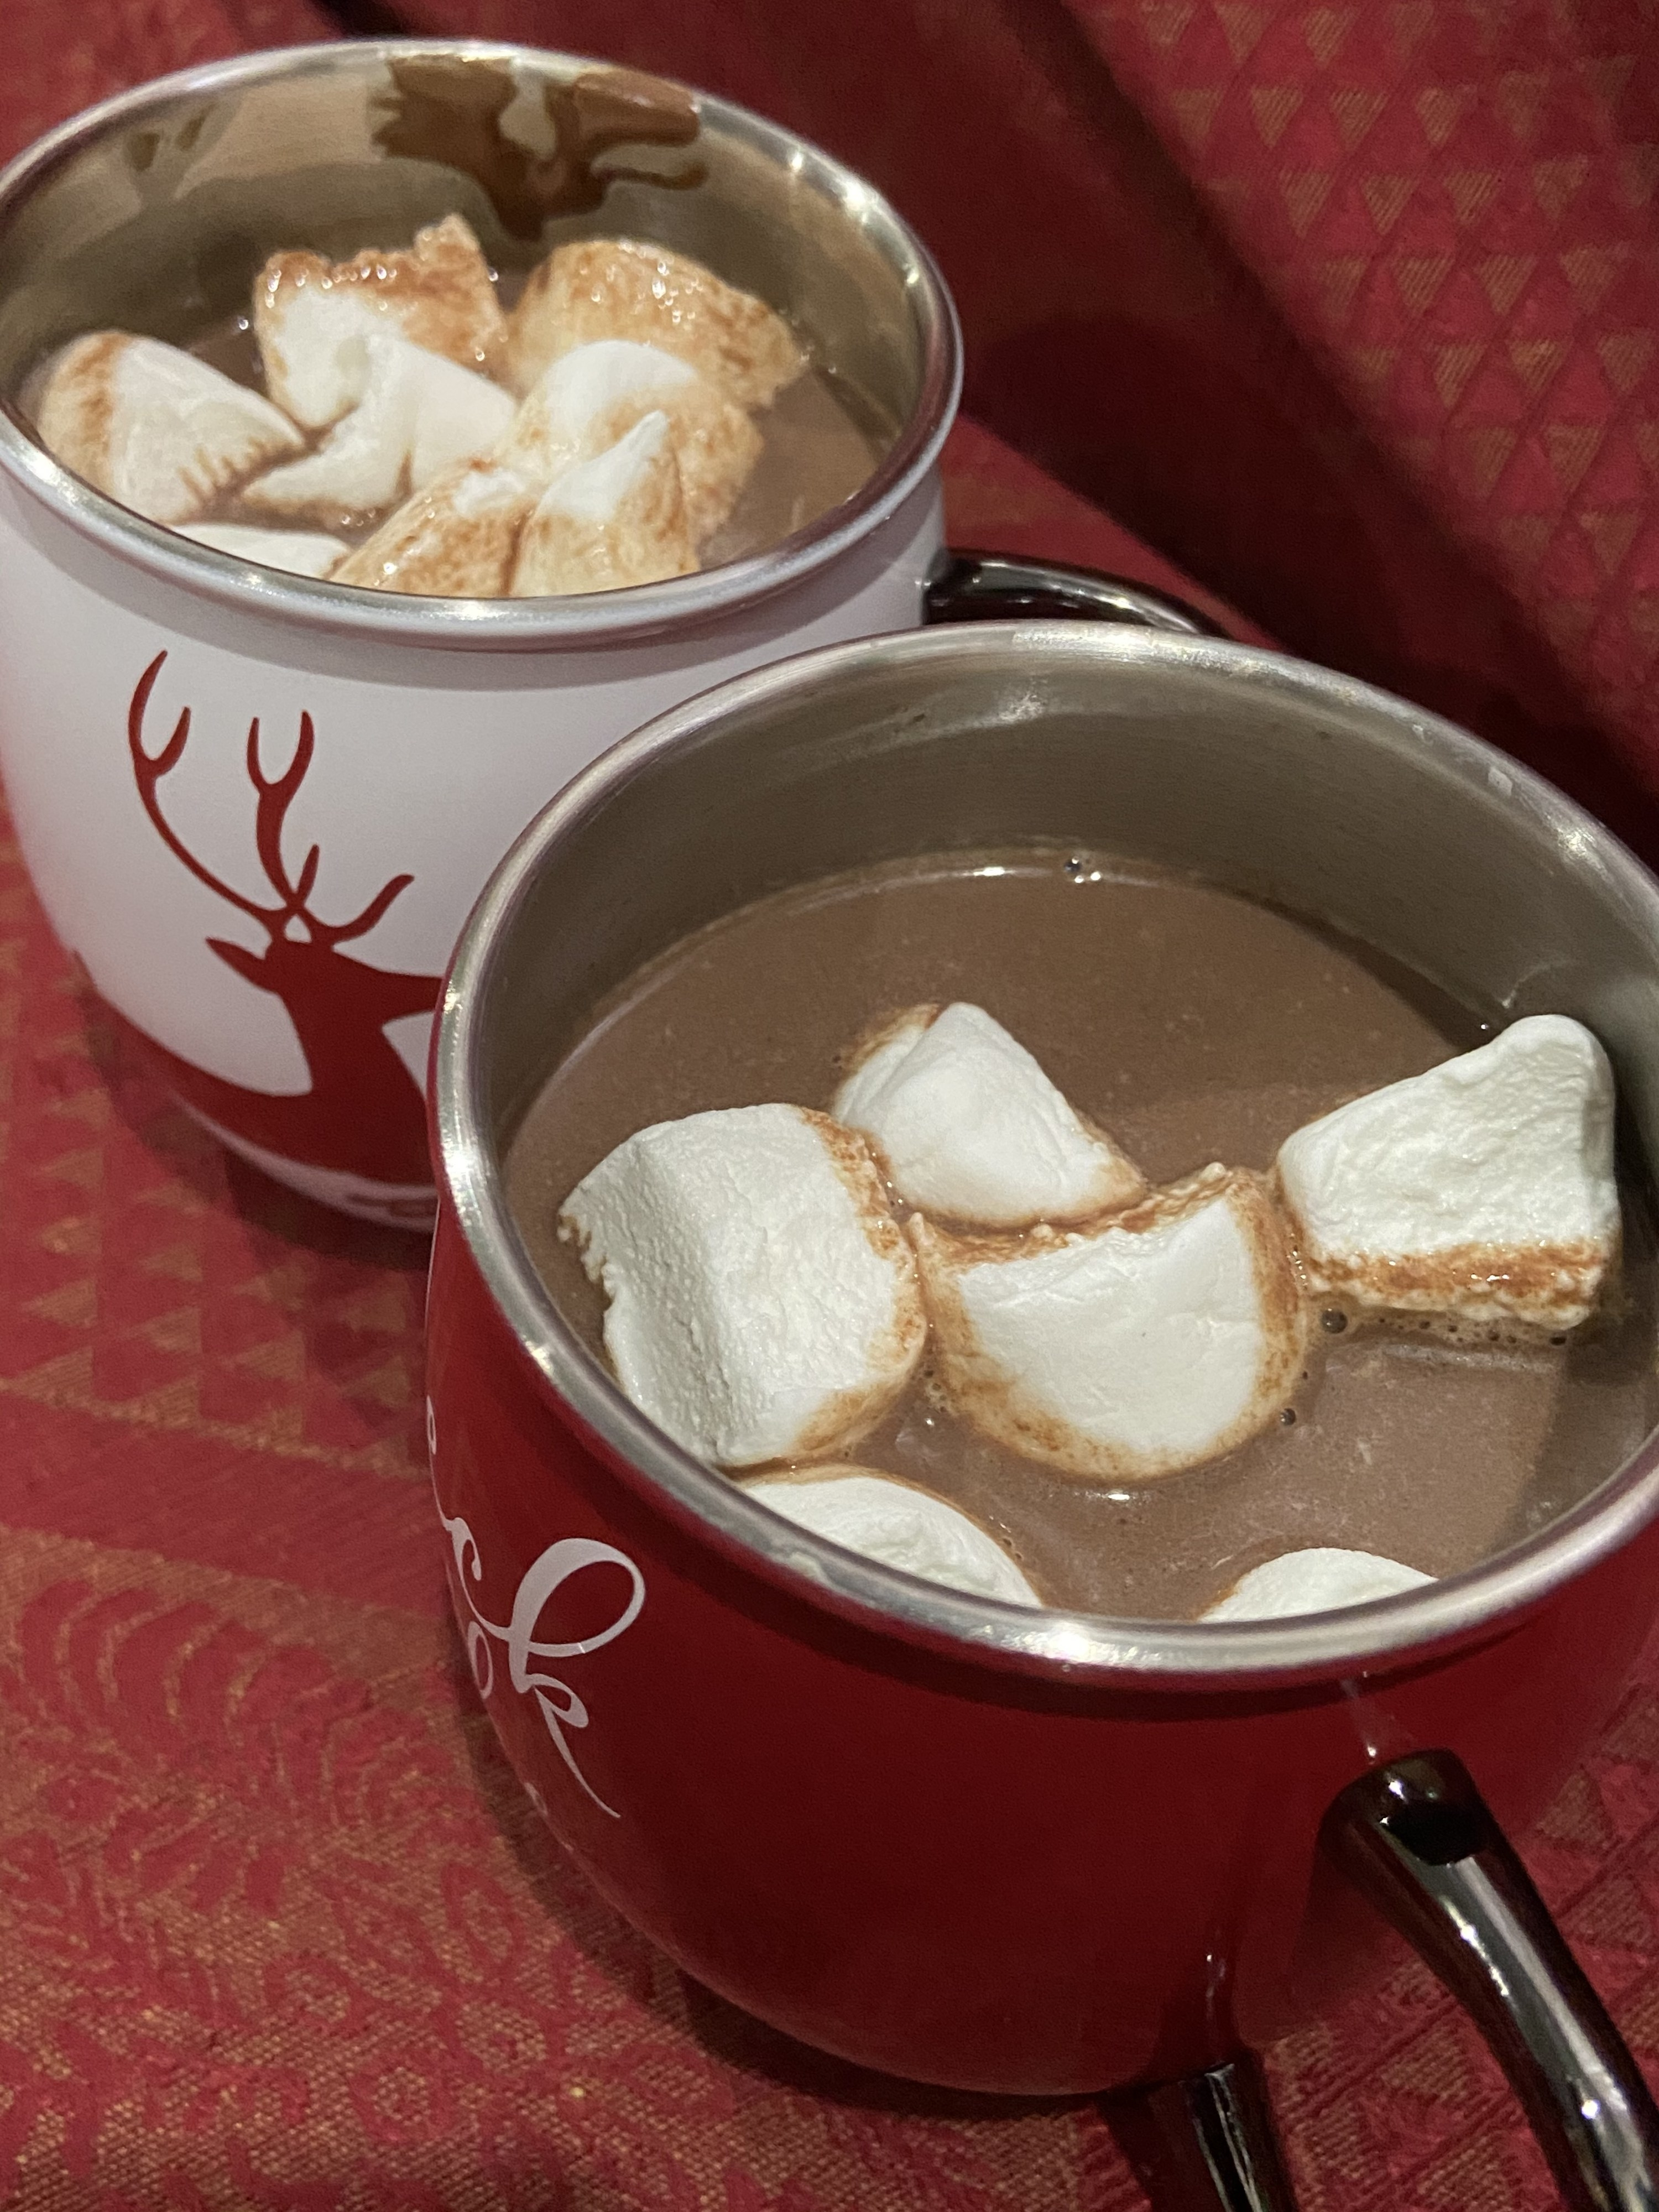 Two cups of hot chocolate with marshmallows inside